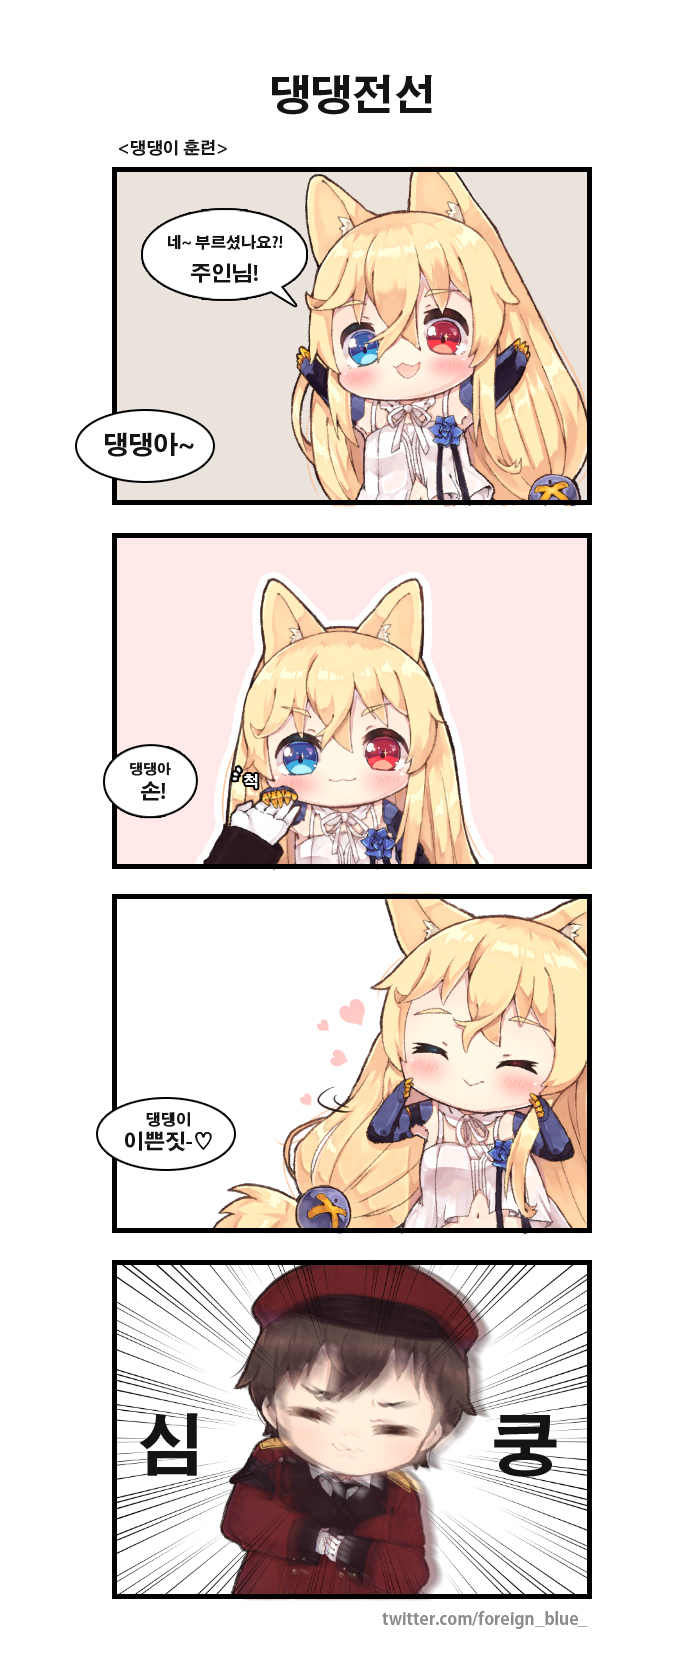 1boy 1girl 4koma :> :3 :d animal_ears armpits babydoll bangs blonde_hair blue_eyes blush brown_hair cat_ears chibi closed_eyes closed_mouth comic detached_collar elbow_gloves eyebrows_visible_through_hair foreign_blue g41_(girls_frontline) girls_frontline gloves hair_between_eyes hair_ornament hat heart heterochromia highres jacket korean long_hair long_sleeves military_hat military_jacket motion_blur navel open_mouth purple_gloves red_eyes red_hat red_jacket smile translation_request very_long_hair white_babydoll white_collar white_gloves